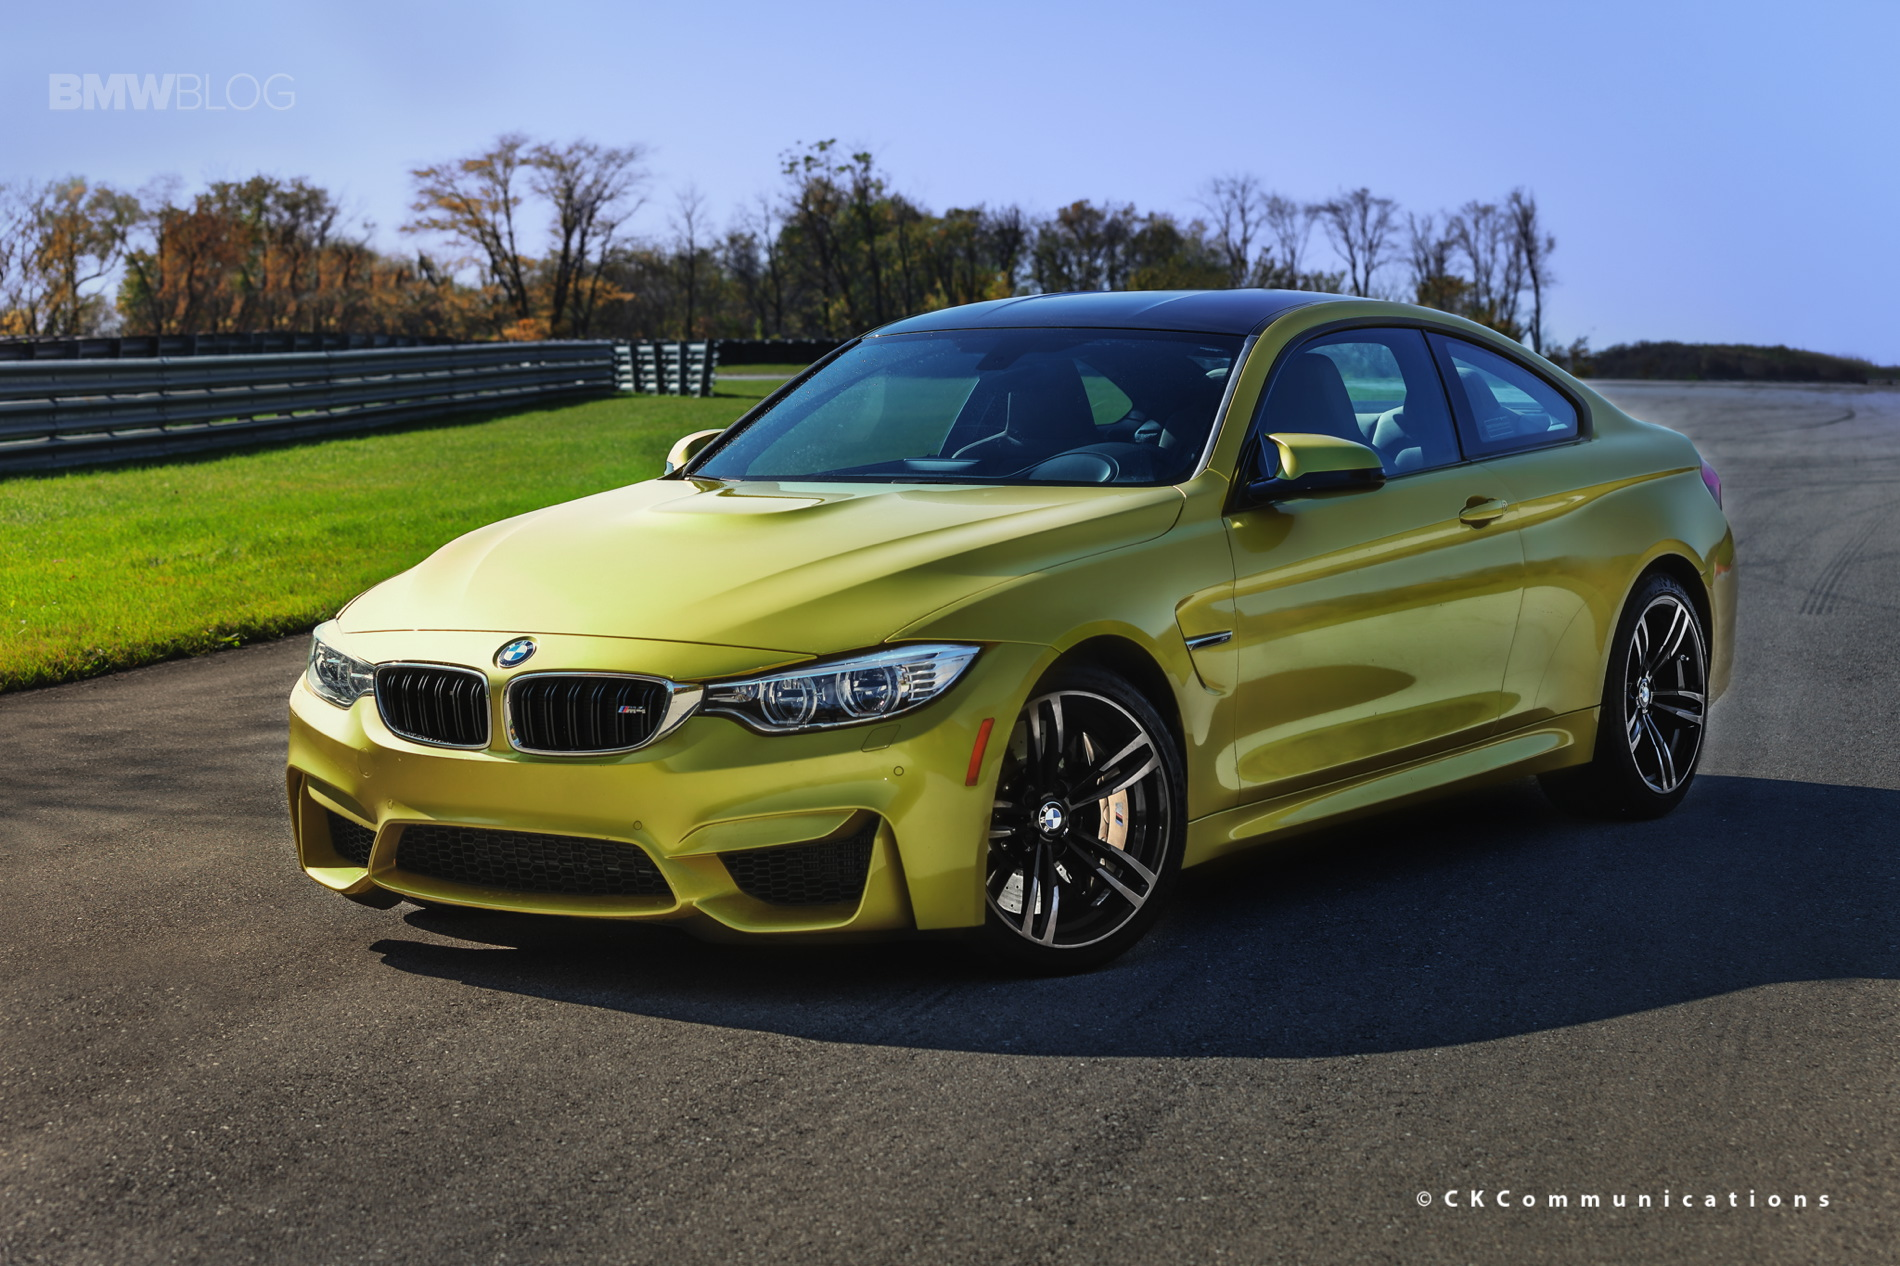 2015 bmw m4 coupe austin yellow images 04